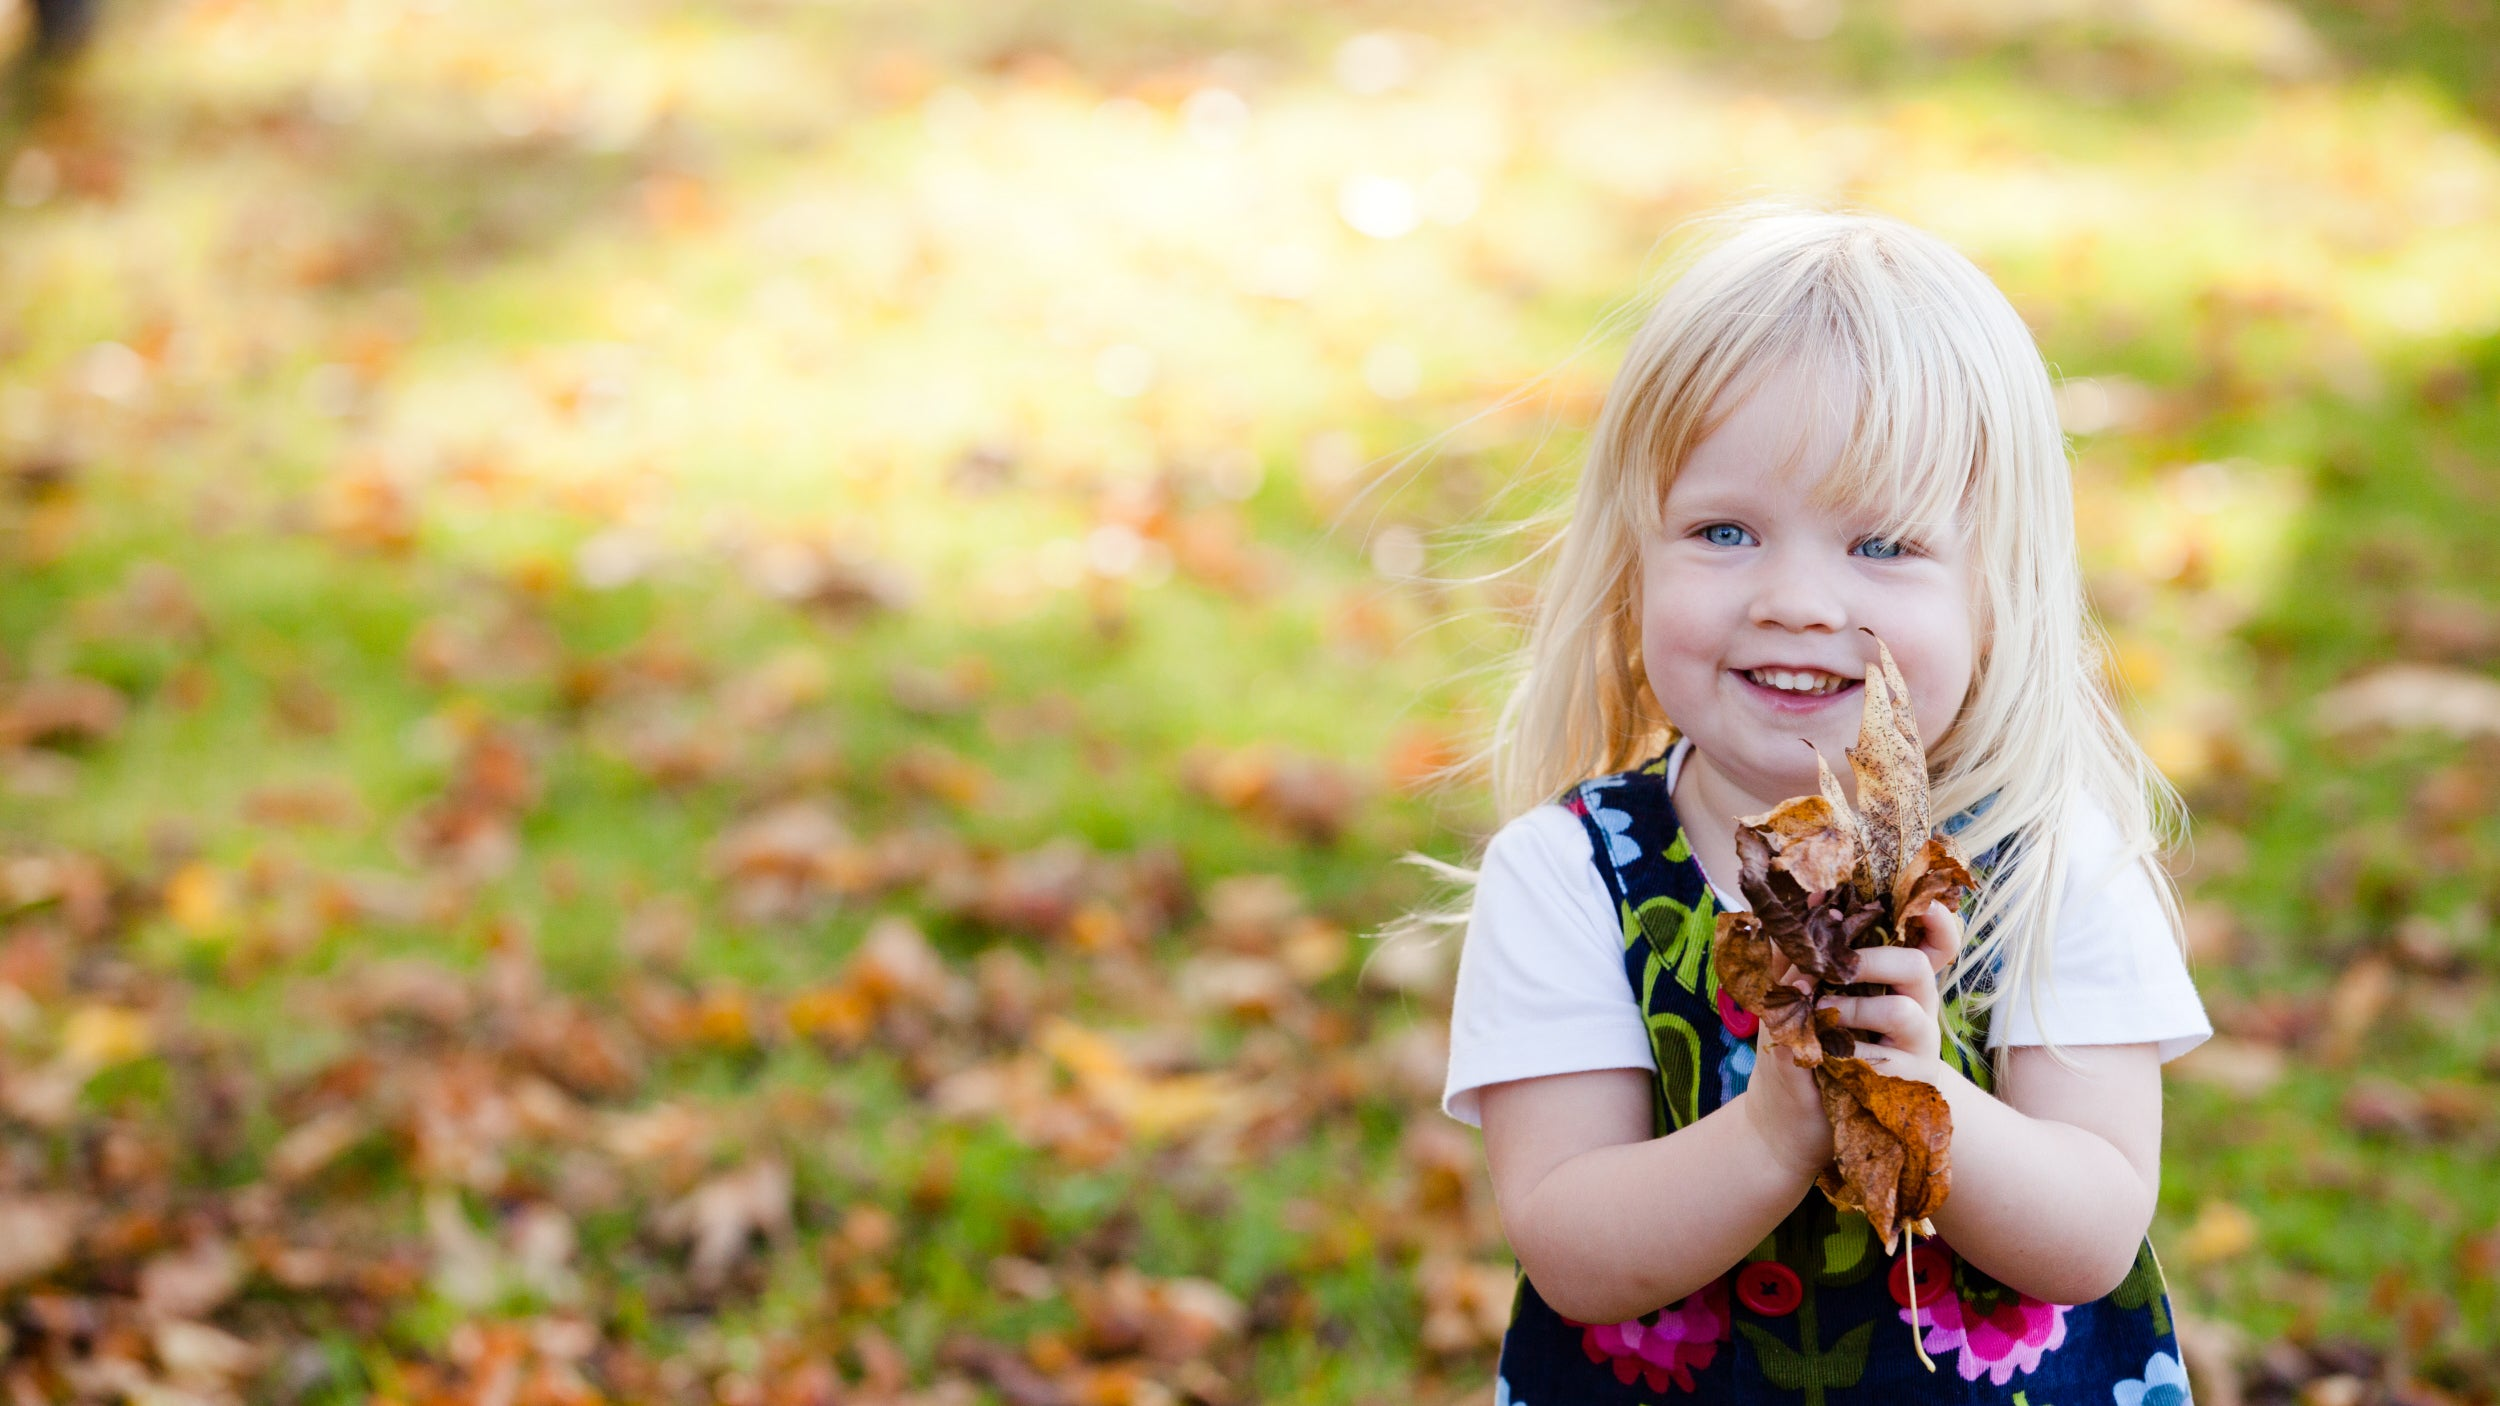 Young girl playing with fallen leaves.